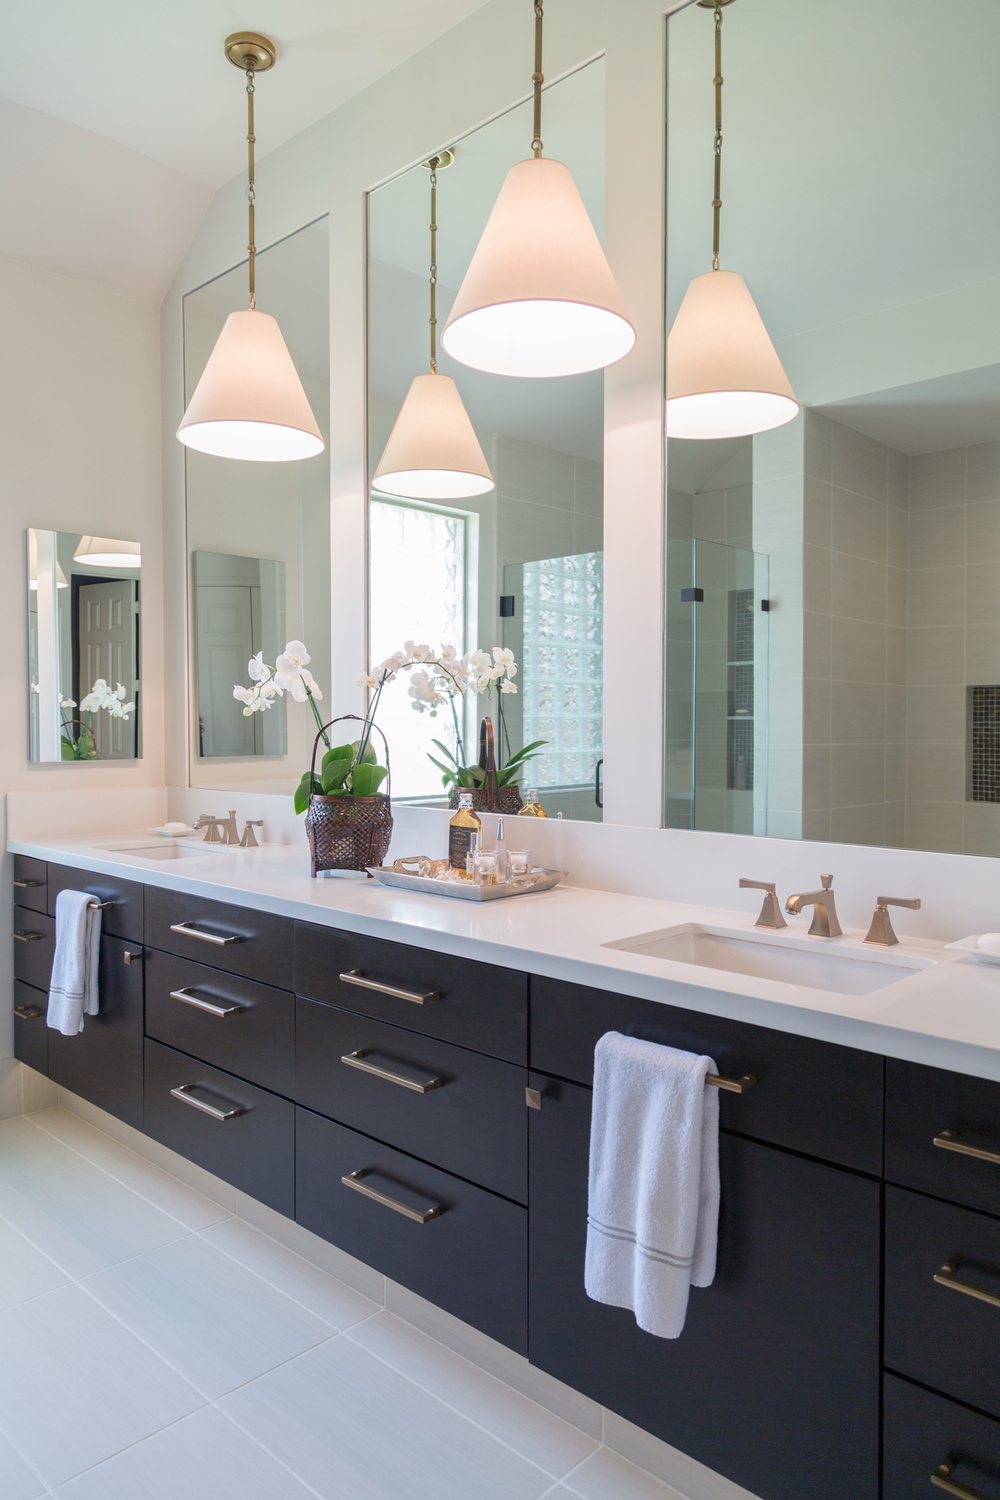 Bathroom design trends |Contemporary bathroom remodel before and after with pendant lights, tall mirrors, and floating vanity | Designer: Carla Aston, Photographer: Tori Aston #bathroom #bathroomideas #bathroomremodel